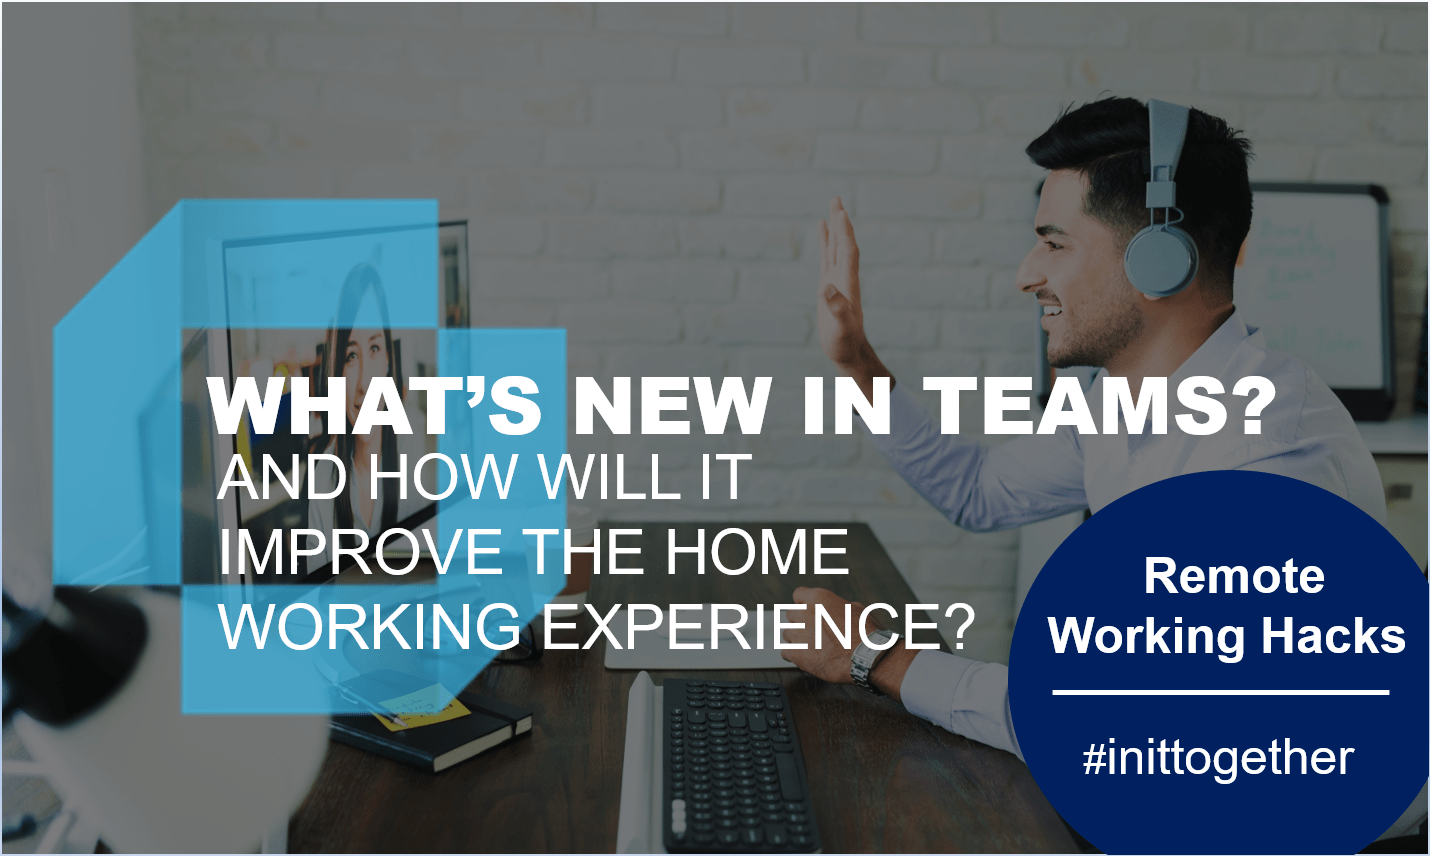 Remote working hacks: what's new in Teams